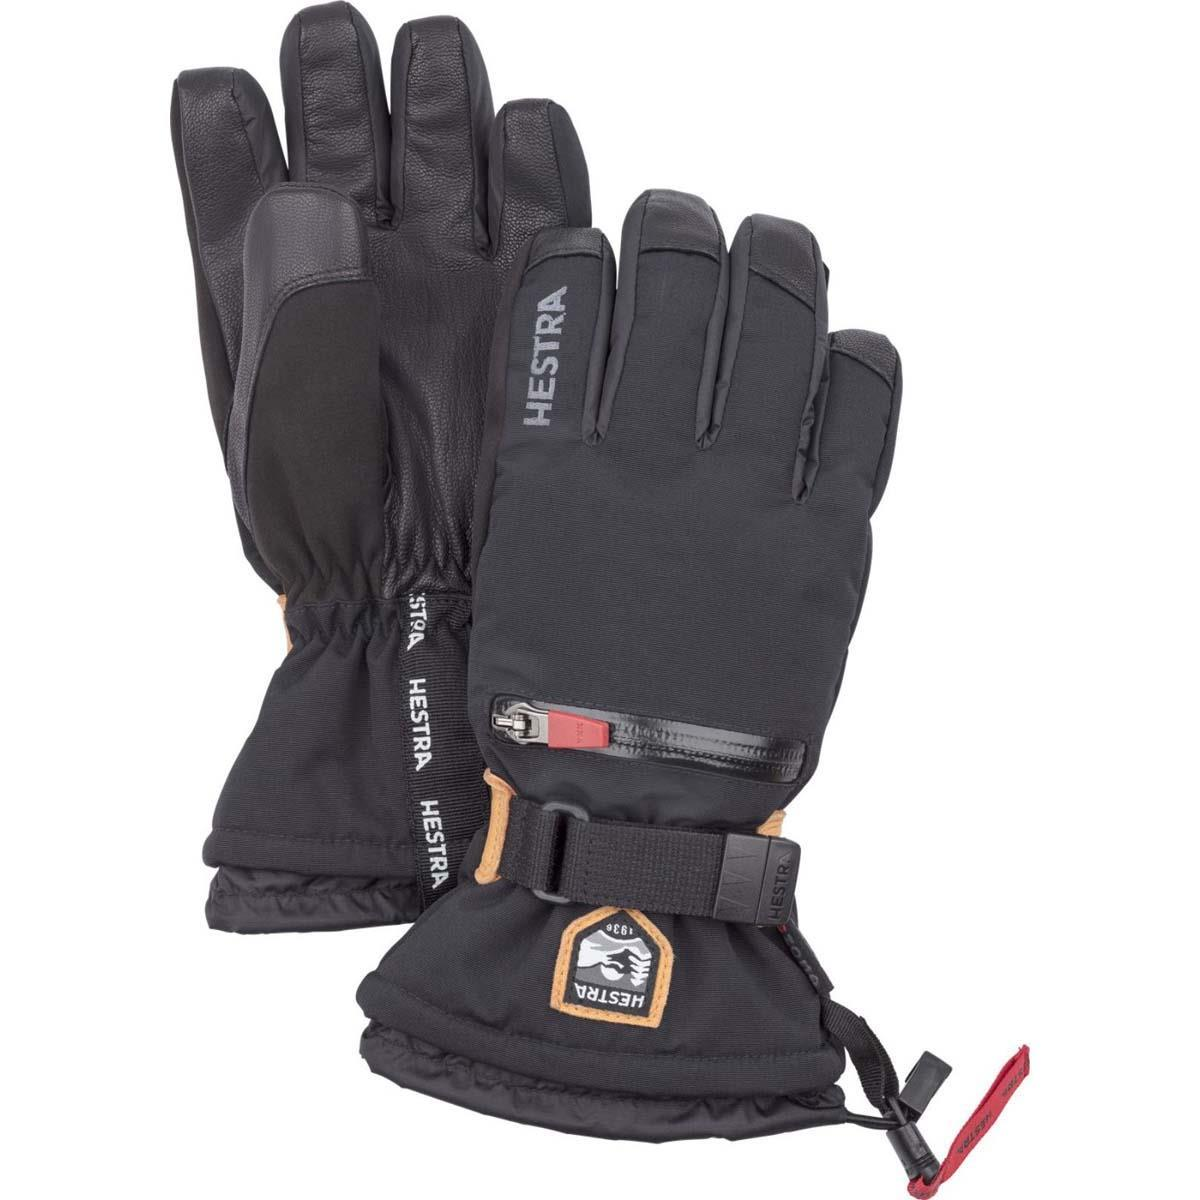 Youth All Mountain Waterproof C-Zone Winter Cold Weather Gloves 5 Hestra Ski Gloves for Kids Black